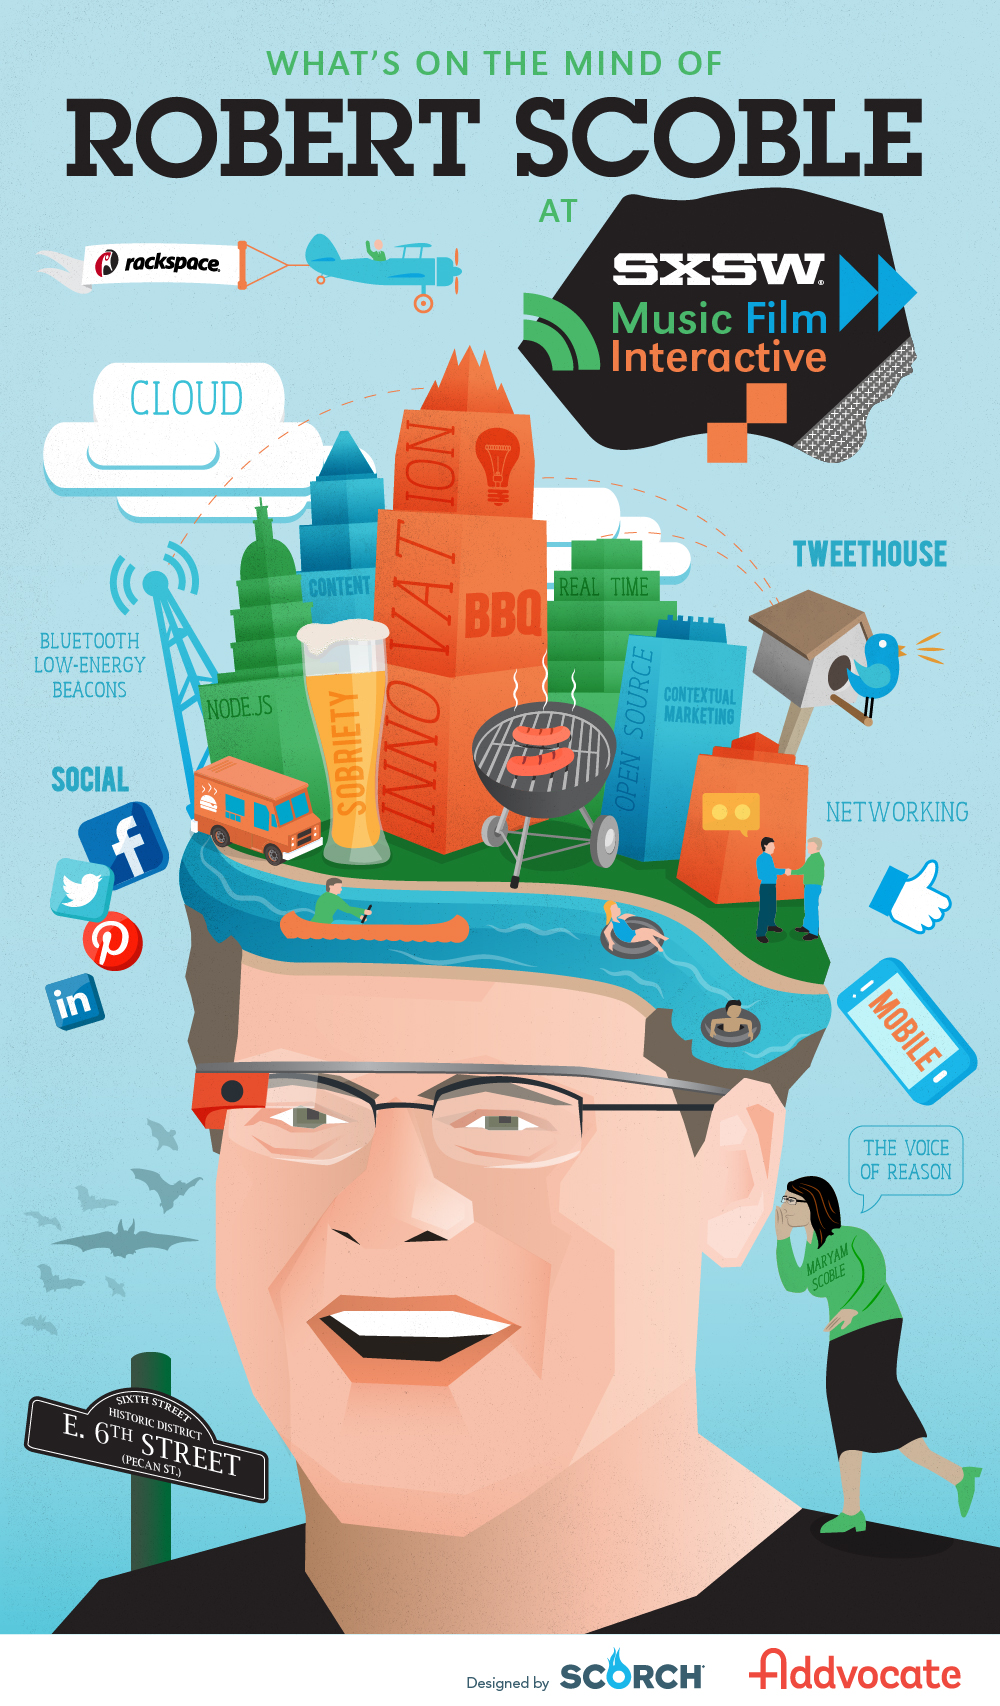 Whats on the Mind of Robert Scoble